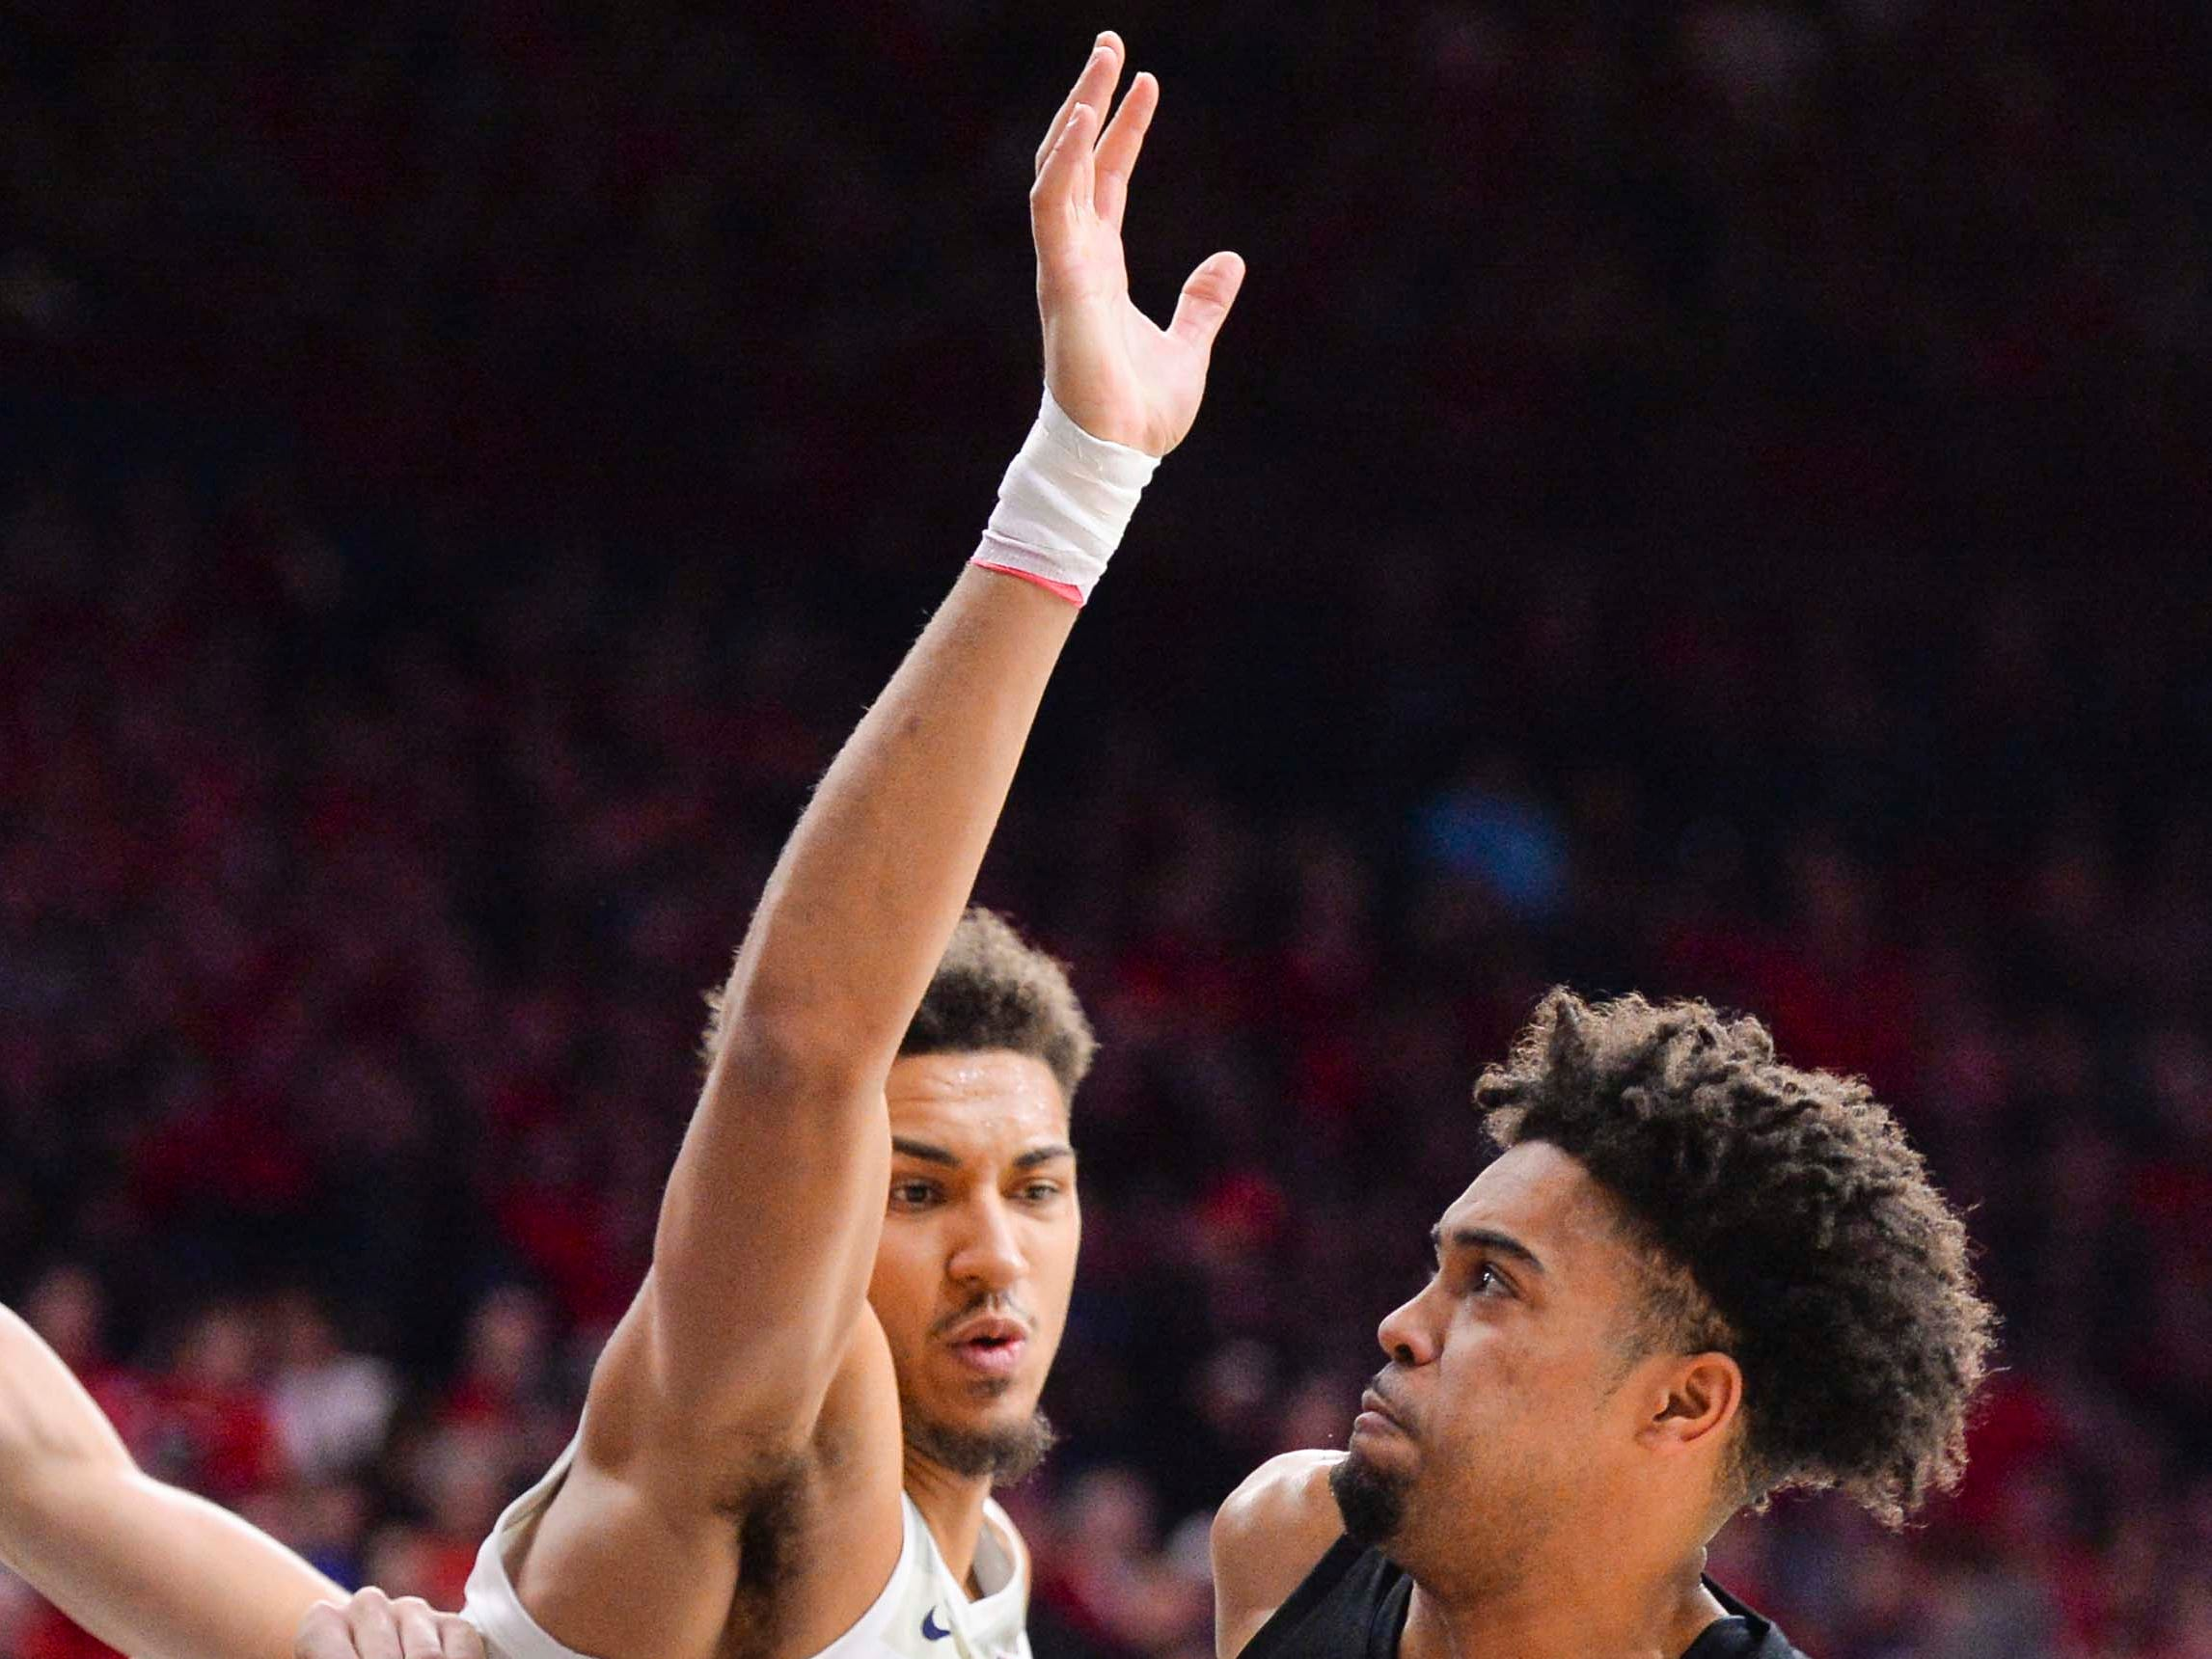 Jan 19, 2019; Tucson, AZ, USA; Oregon State Beavers guard Stephen Thompson Jr. (1) attempts to shoot as Arizona Wildcats center Chase Jeter (4) defends during the first half at McKale Center. Mandatory Credit: Casey Sapio-USA TODAY Sports